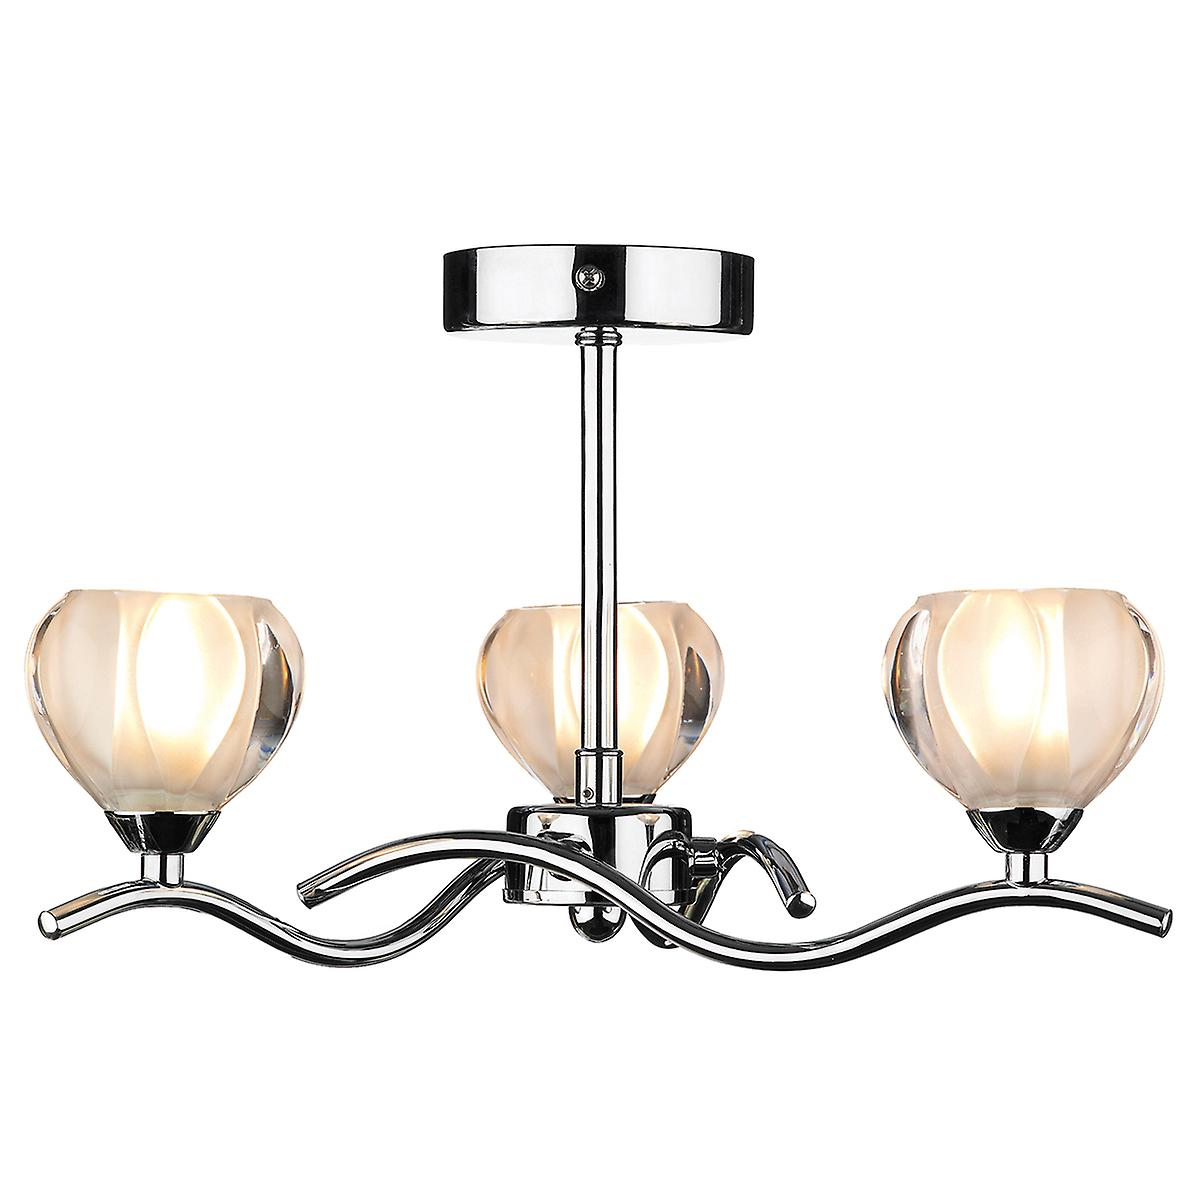 Dar CYN0350 Cynthia Modern Chrome 3 Arm Semi-Flush Ceiling Light With Glass